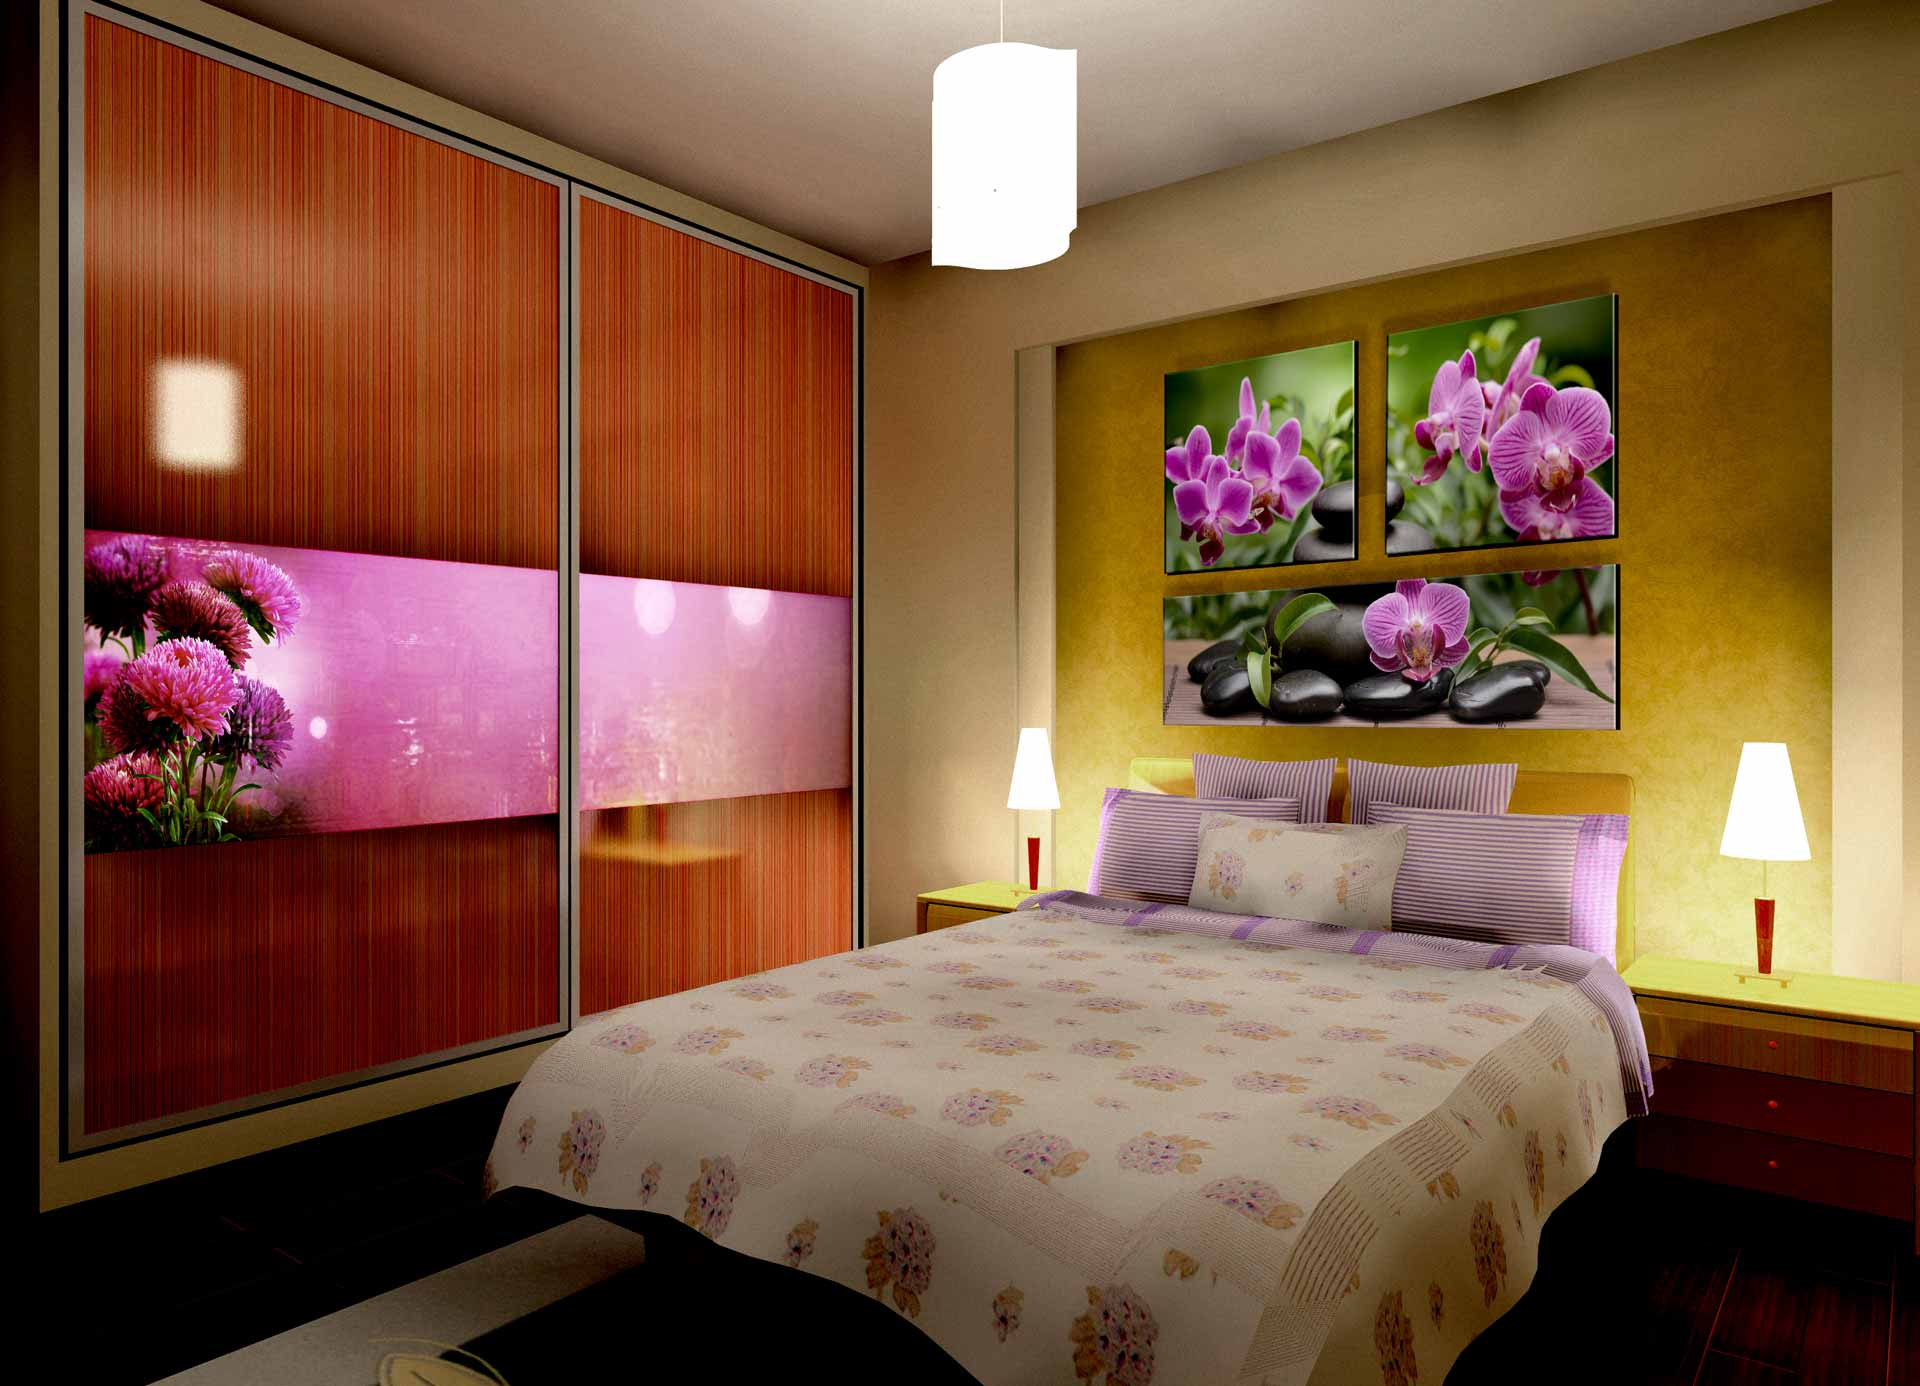 Violet Flowers bedroom&wardrobe